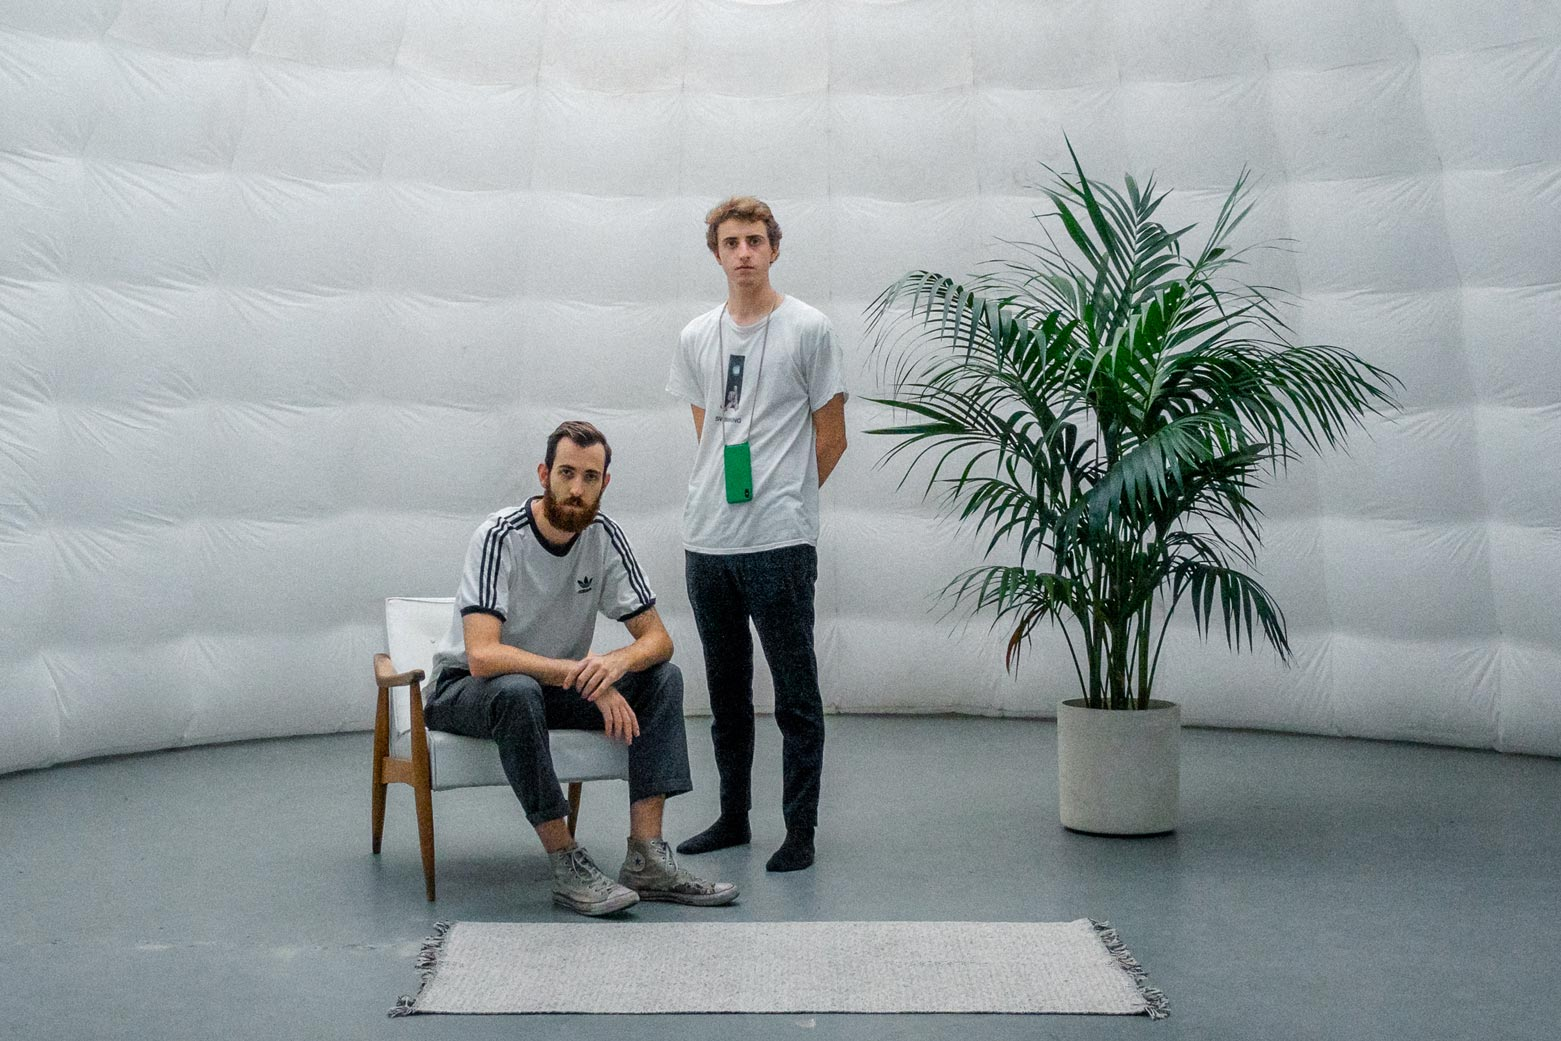 Co-founders Jacob and Hunter in our dome set design.